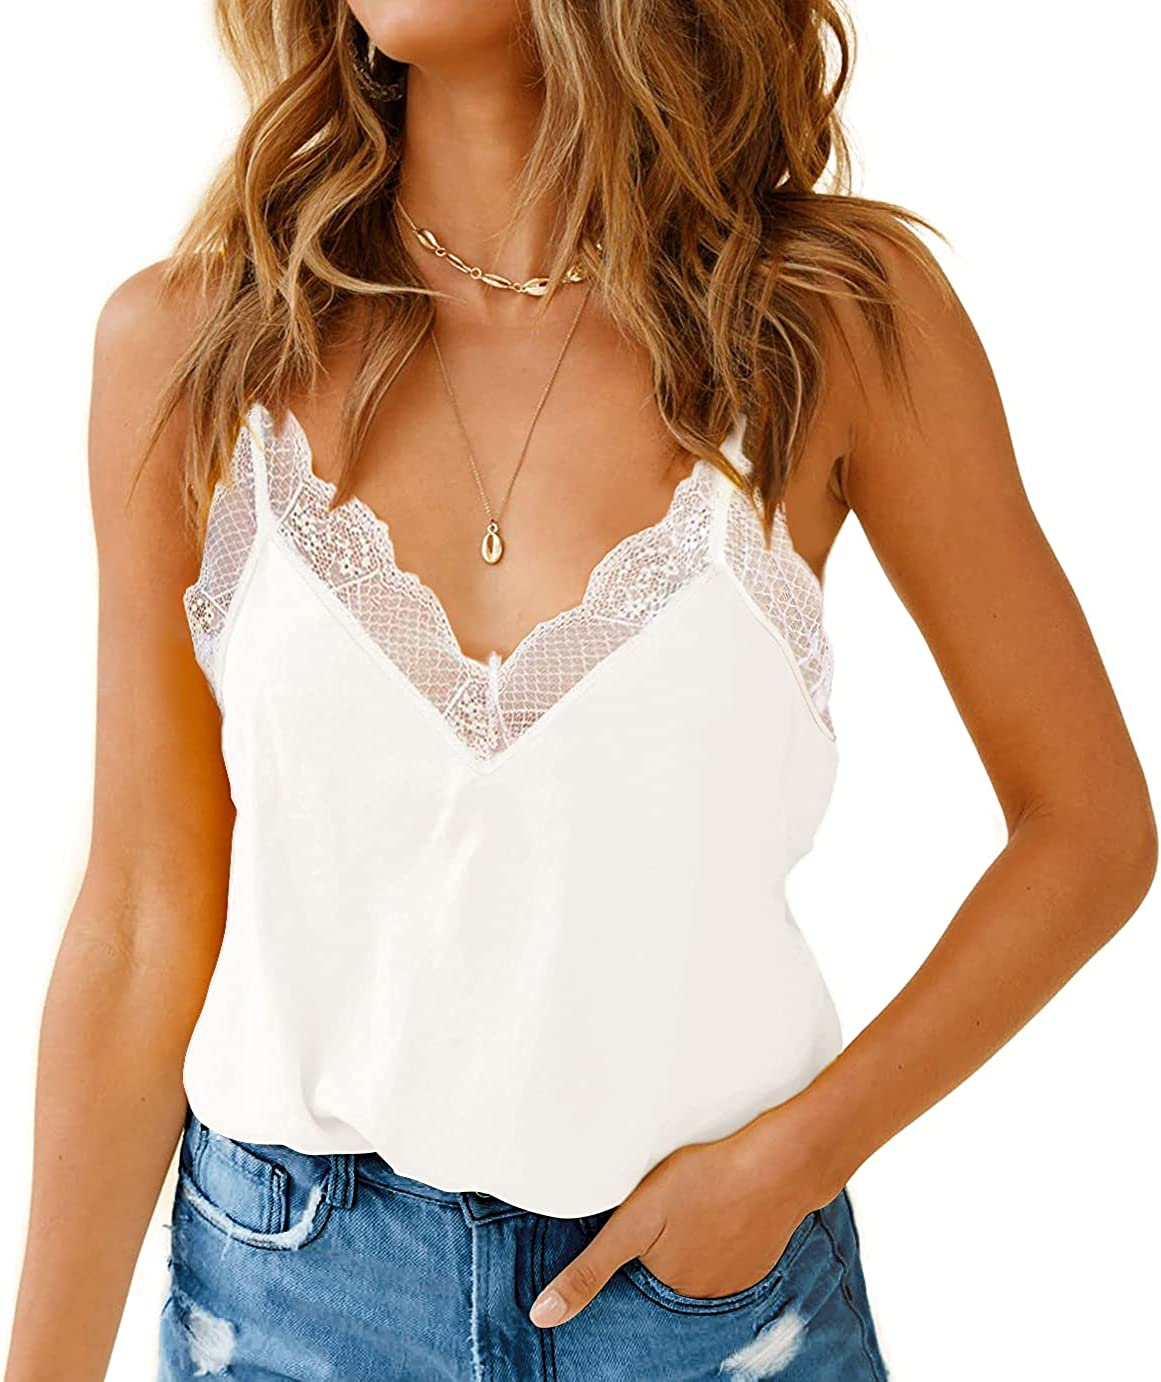 Risesun Women's V Neck Lace Trim Summer Sexy Camisole Loose Fit Halter Tank Tops